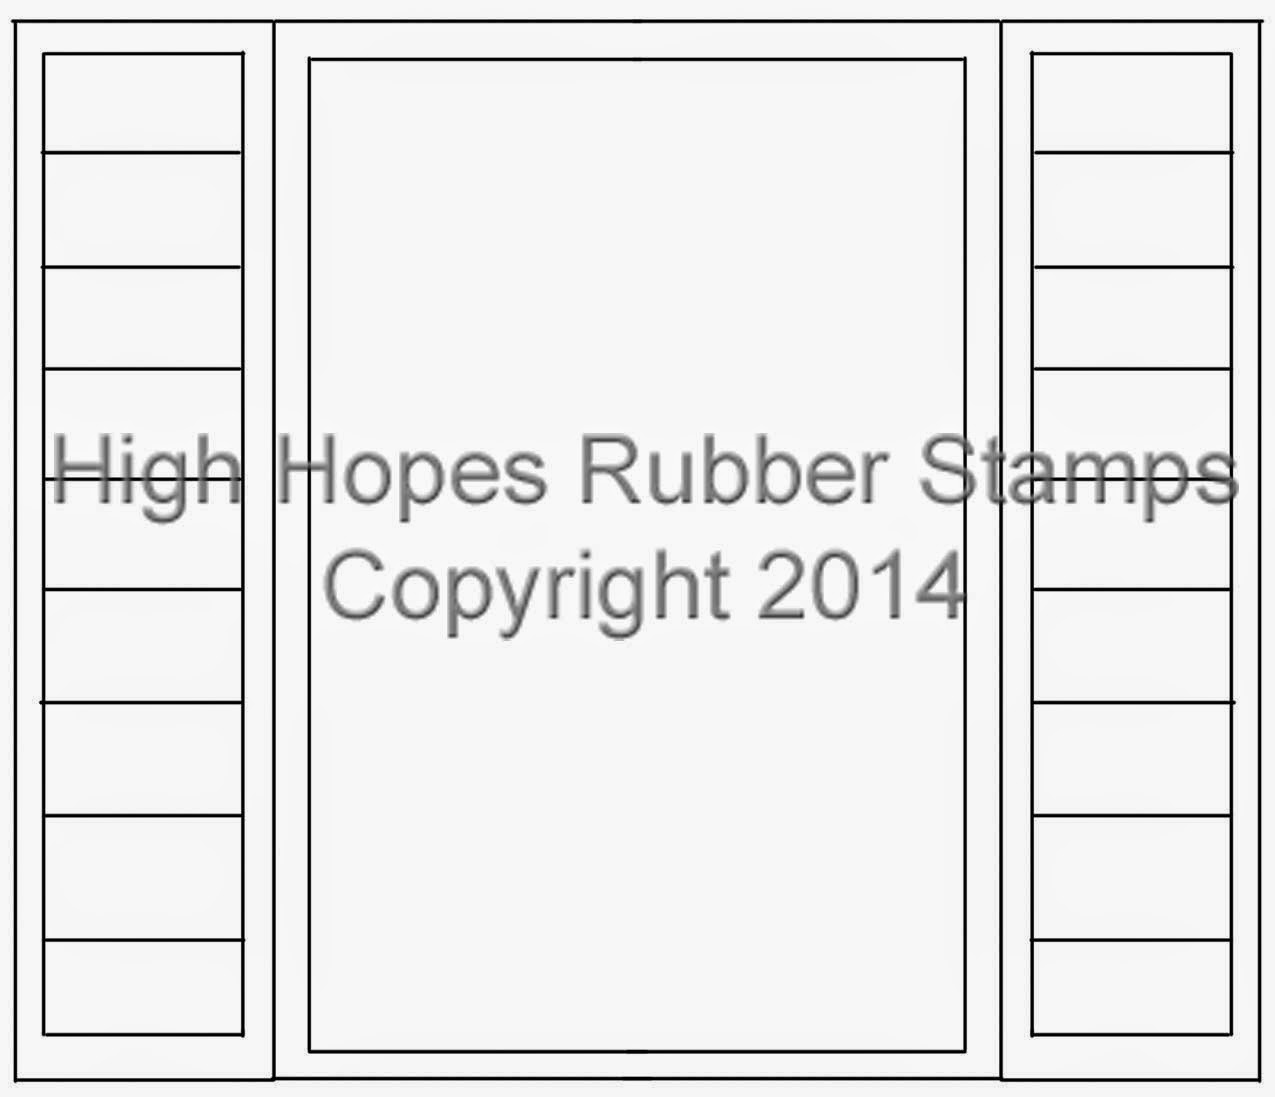 http://www.highhopesstamps.com/catalogue-stamp.php?stamp_id=S-277&currency=2&returnto=/catalogue-pages.php?page=3+search=hotp+currency=2